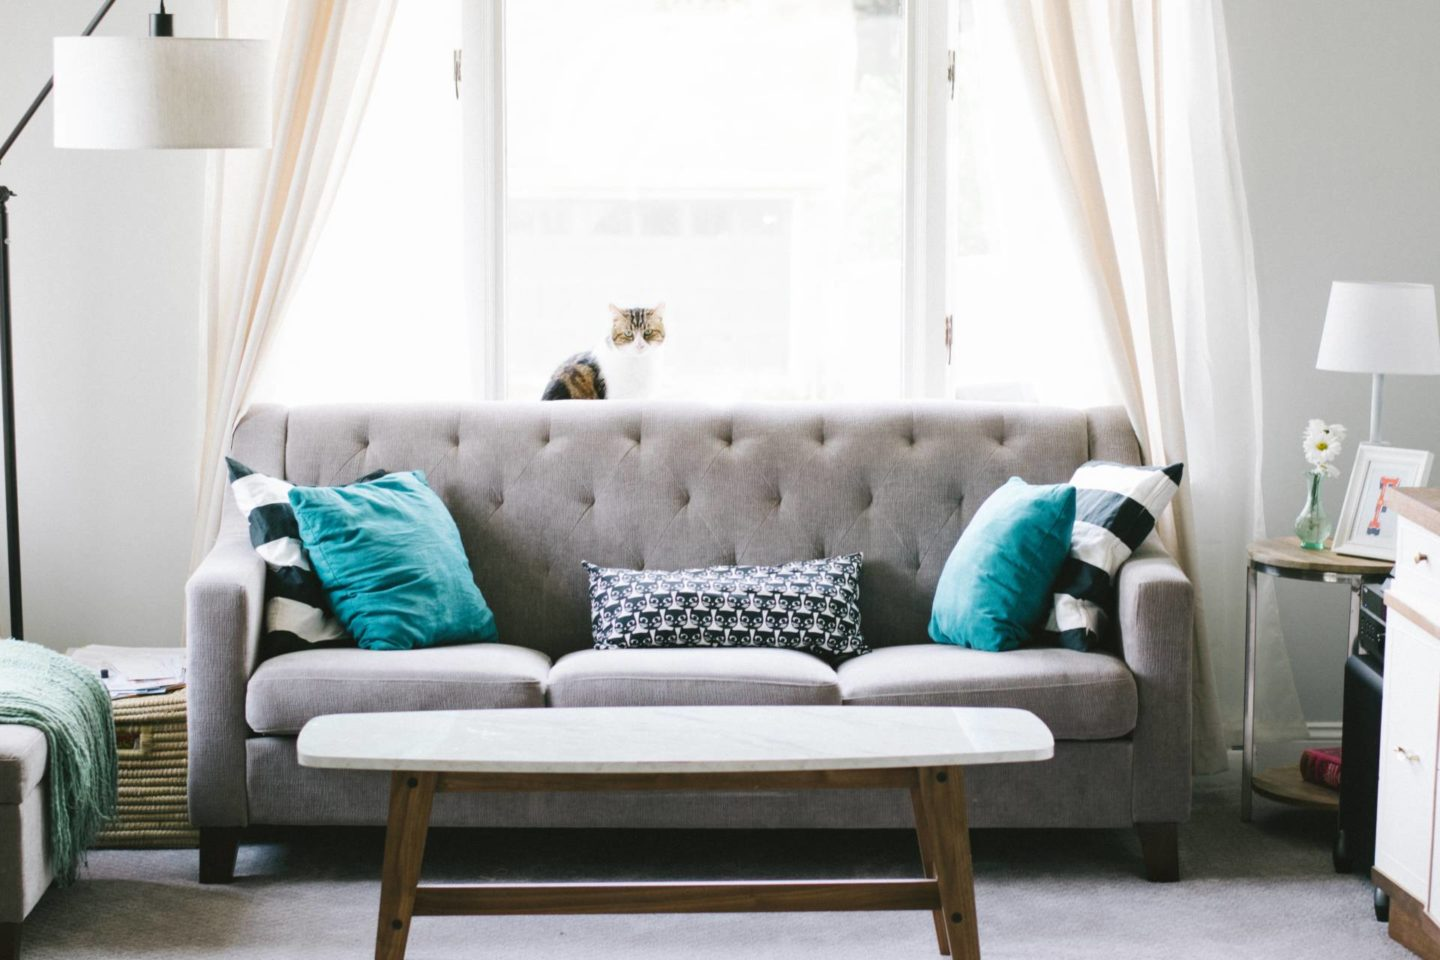 17 Ways to Add Value to Your Home